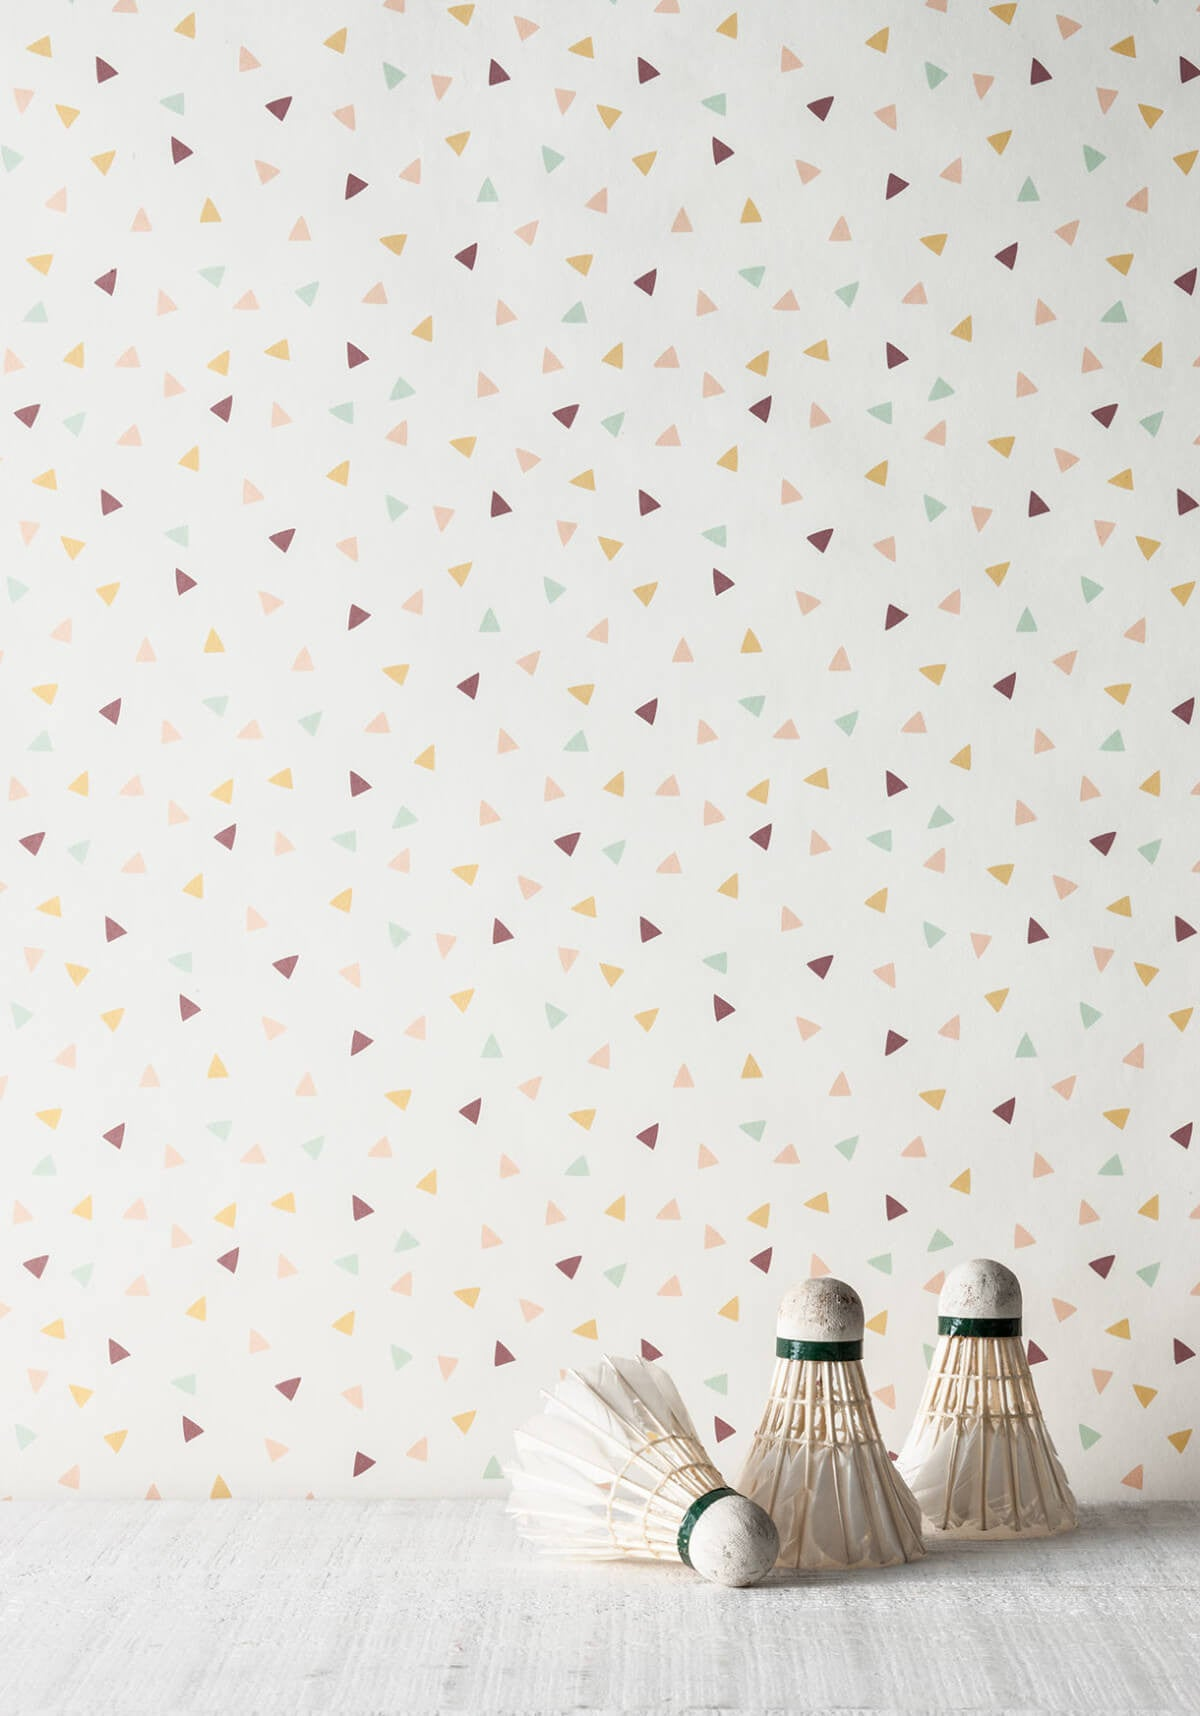 Confetti Wallpaper From The Love Mae Collection By Milton King